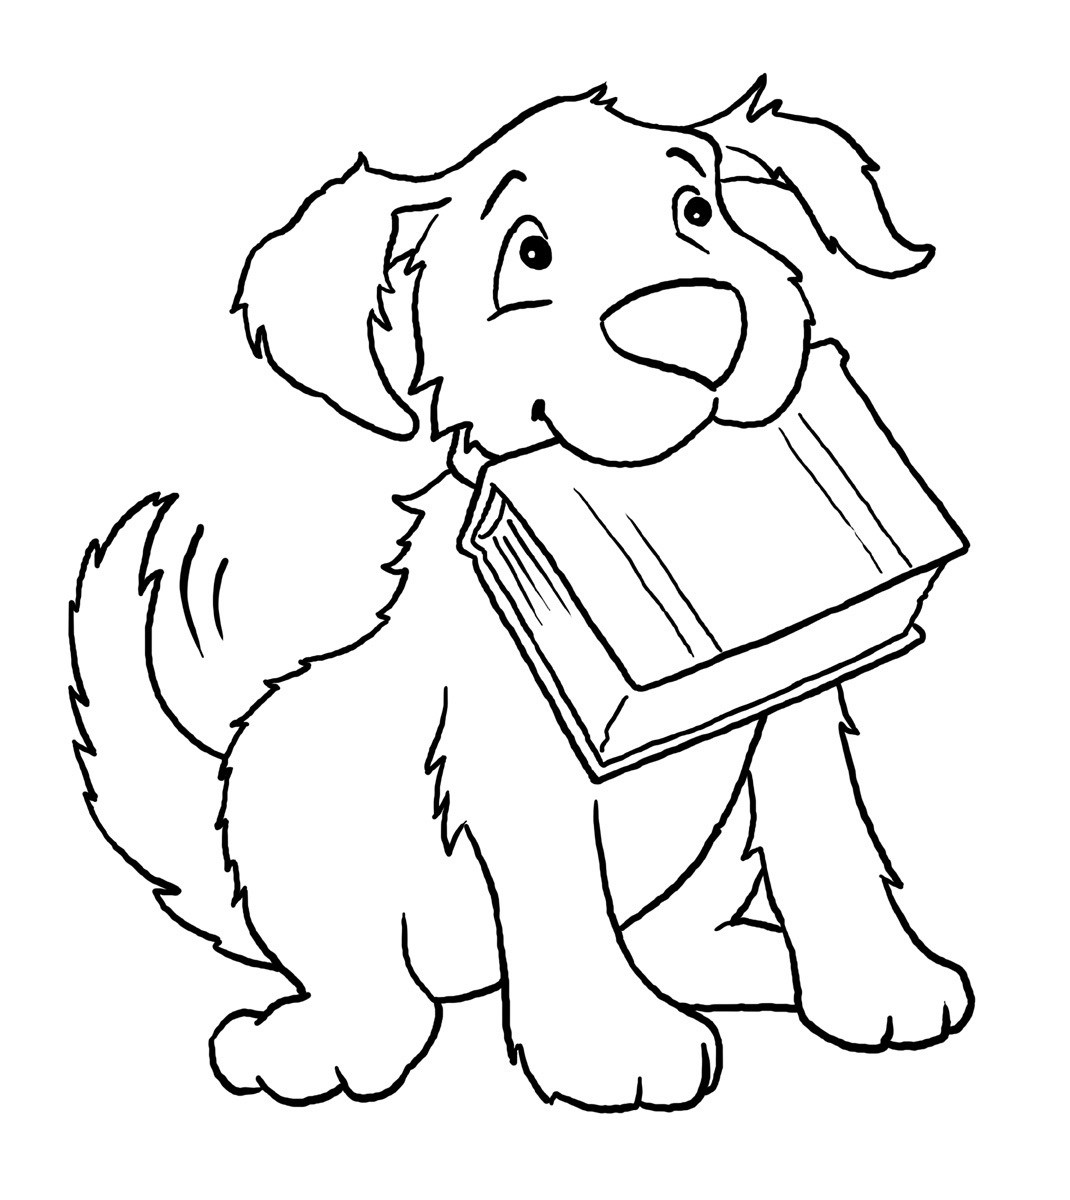 Easy Coloring Pages Best Coloring